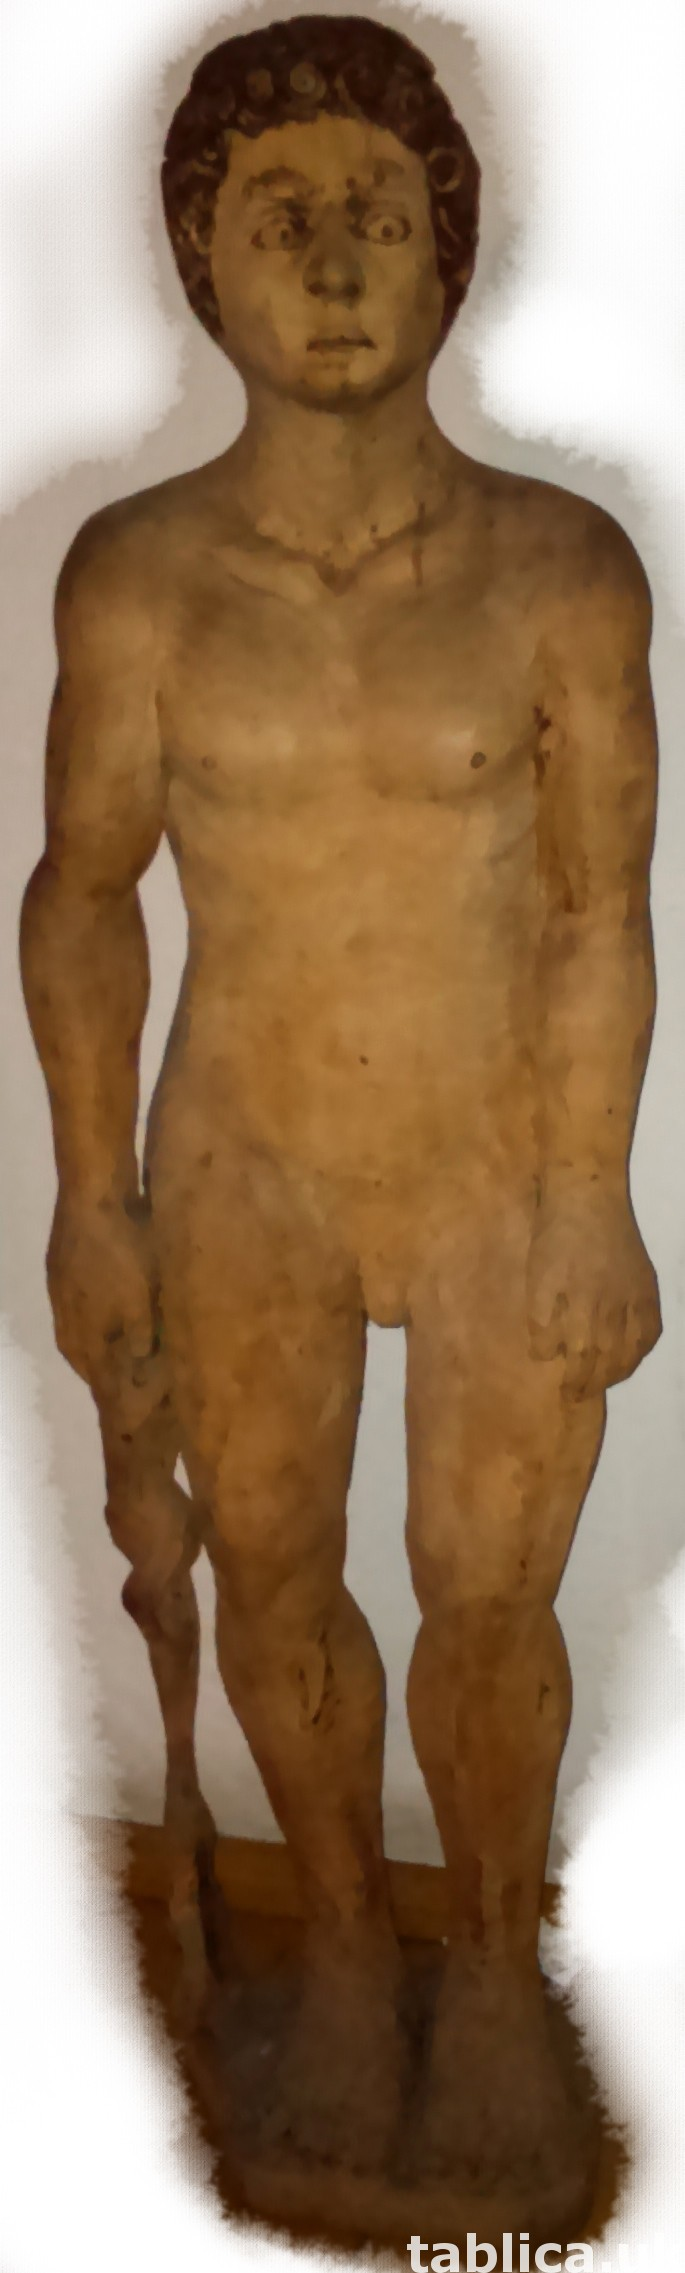 For Sale: Sculpture: The Looking Man 1